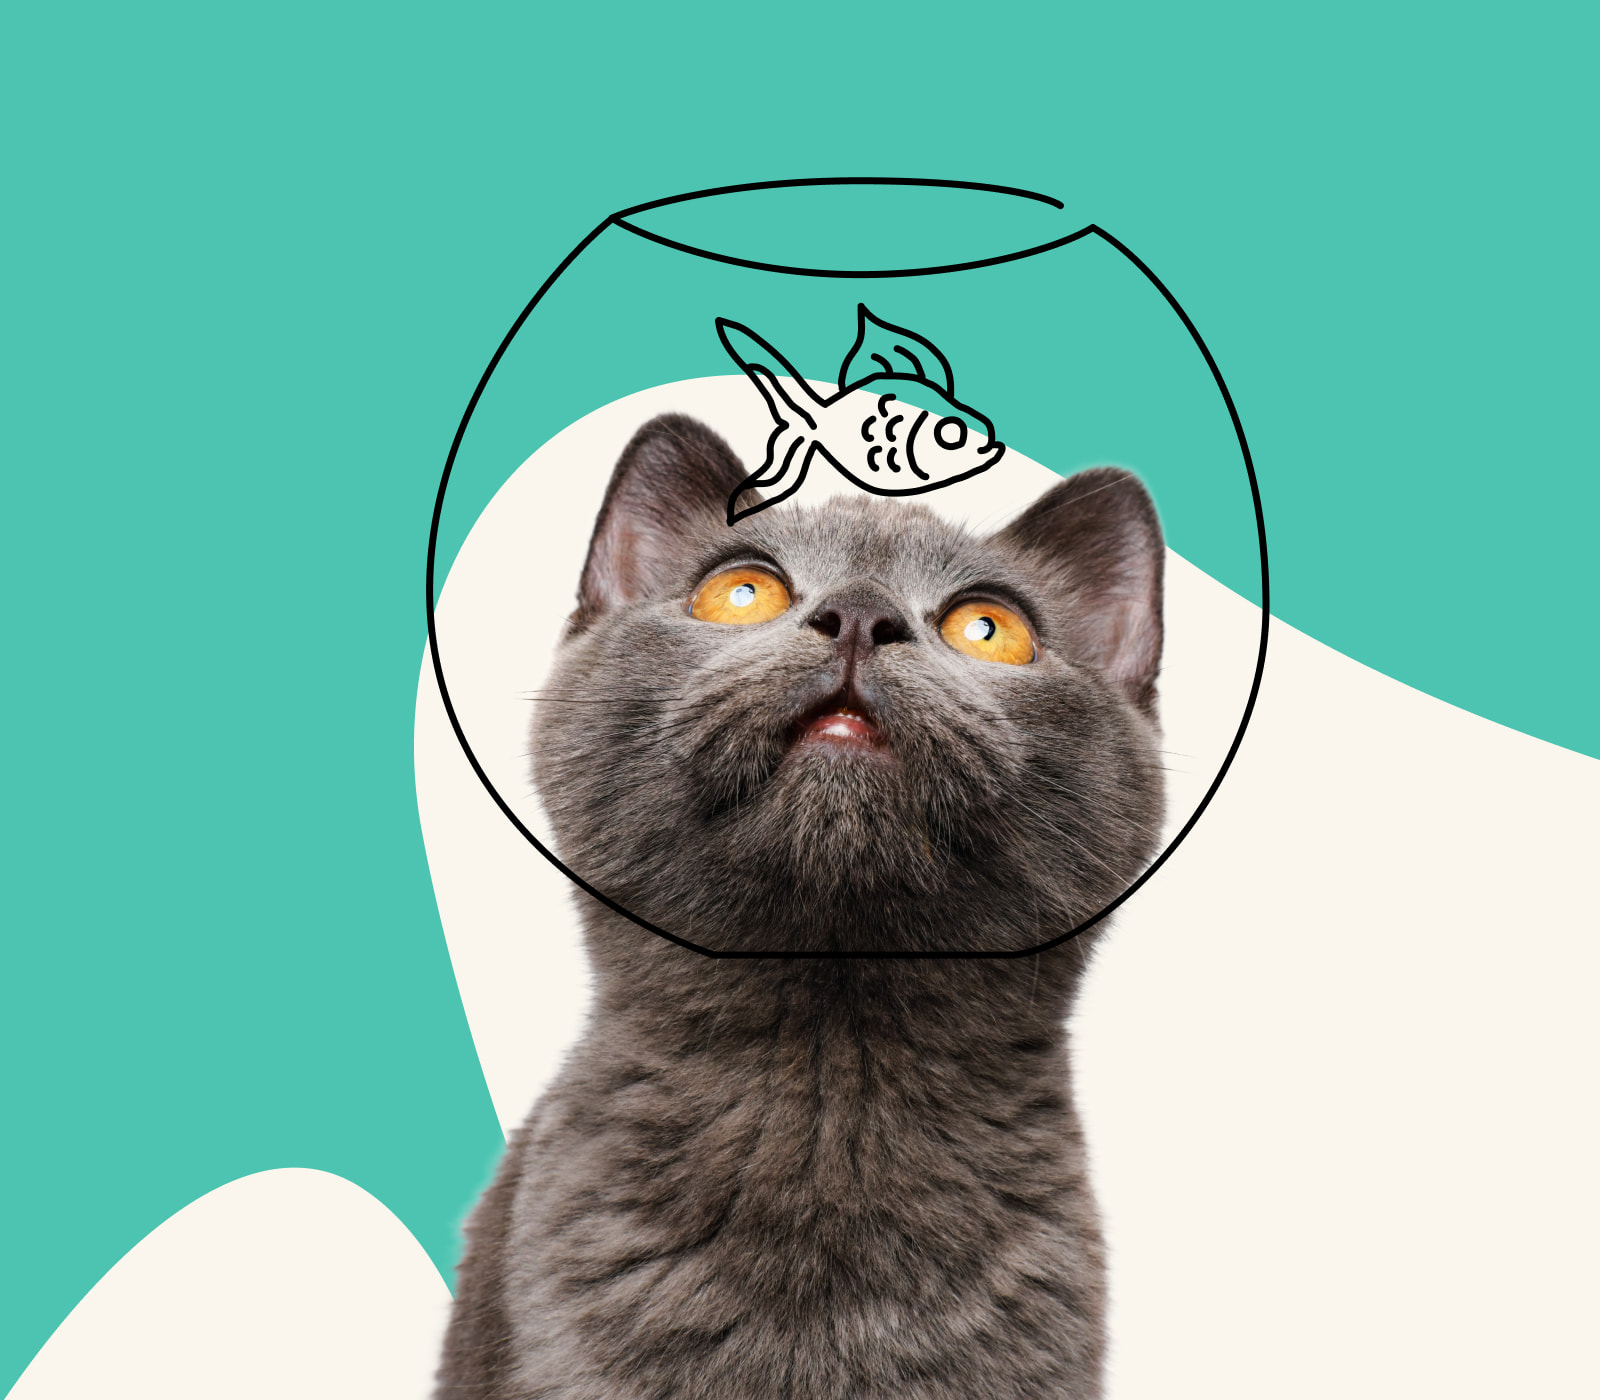 A cat with their head in a fishbowl